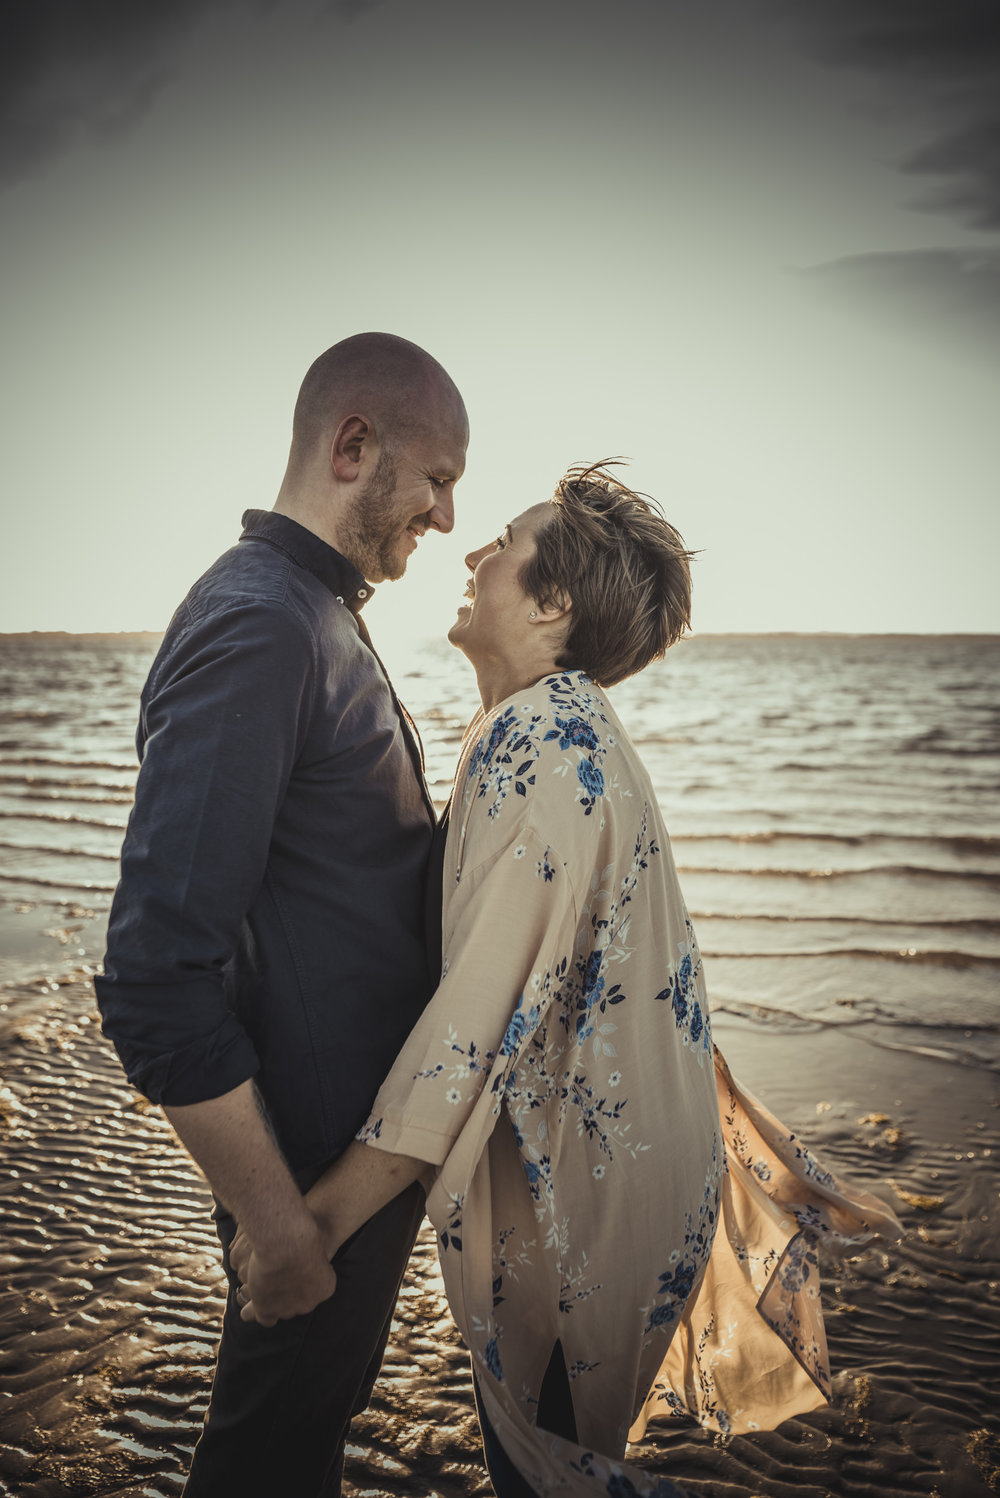 Tara-and-Simon-Engagement-Session- West-Wittering-Beach-West-Sussex-Manu-Mendoza-Wedding-Photography-054.jpg